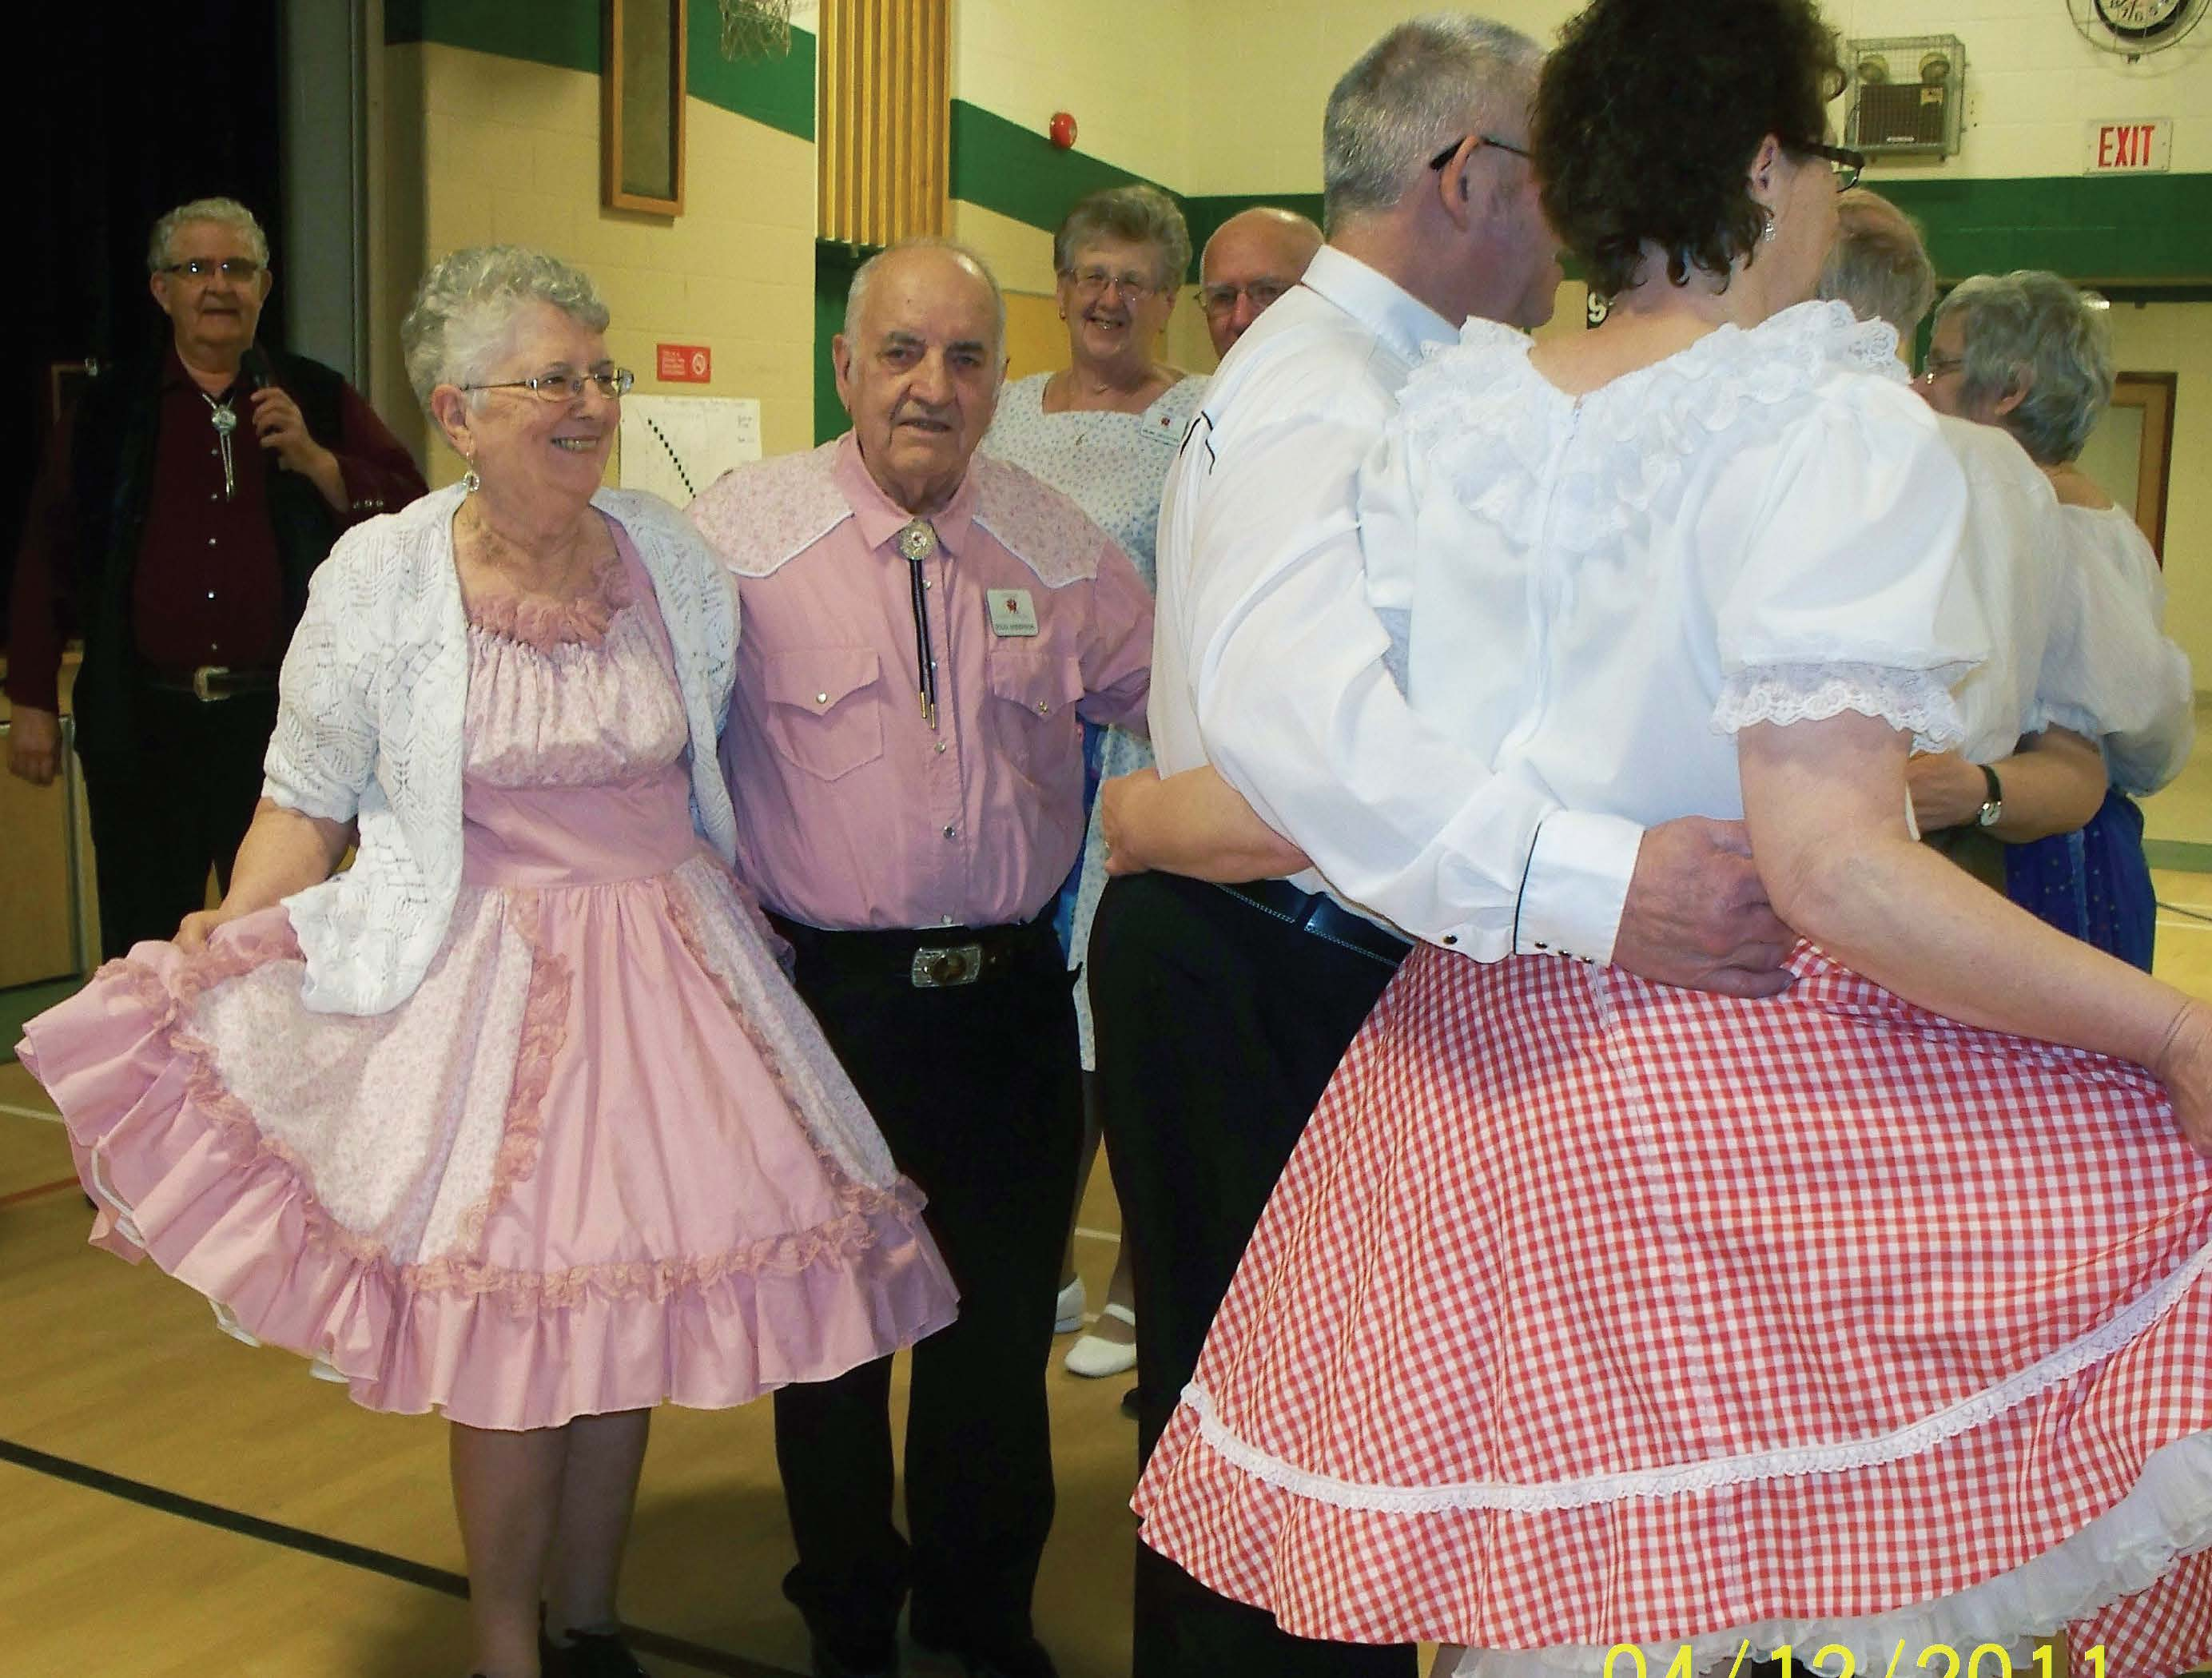 Doug and Dorelene Anderson, pictured at left, of the Hanover Happy Twirlers have taught square dancing to newcomers to the activity for more than 20 years.